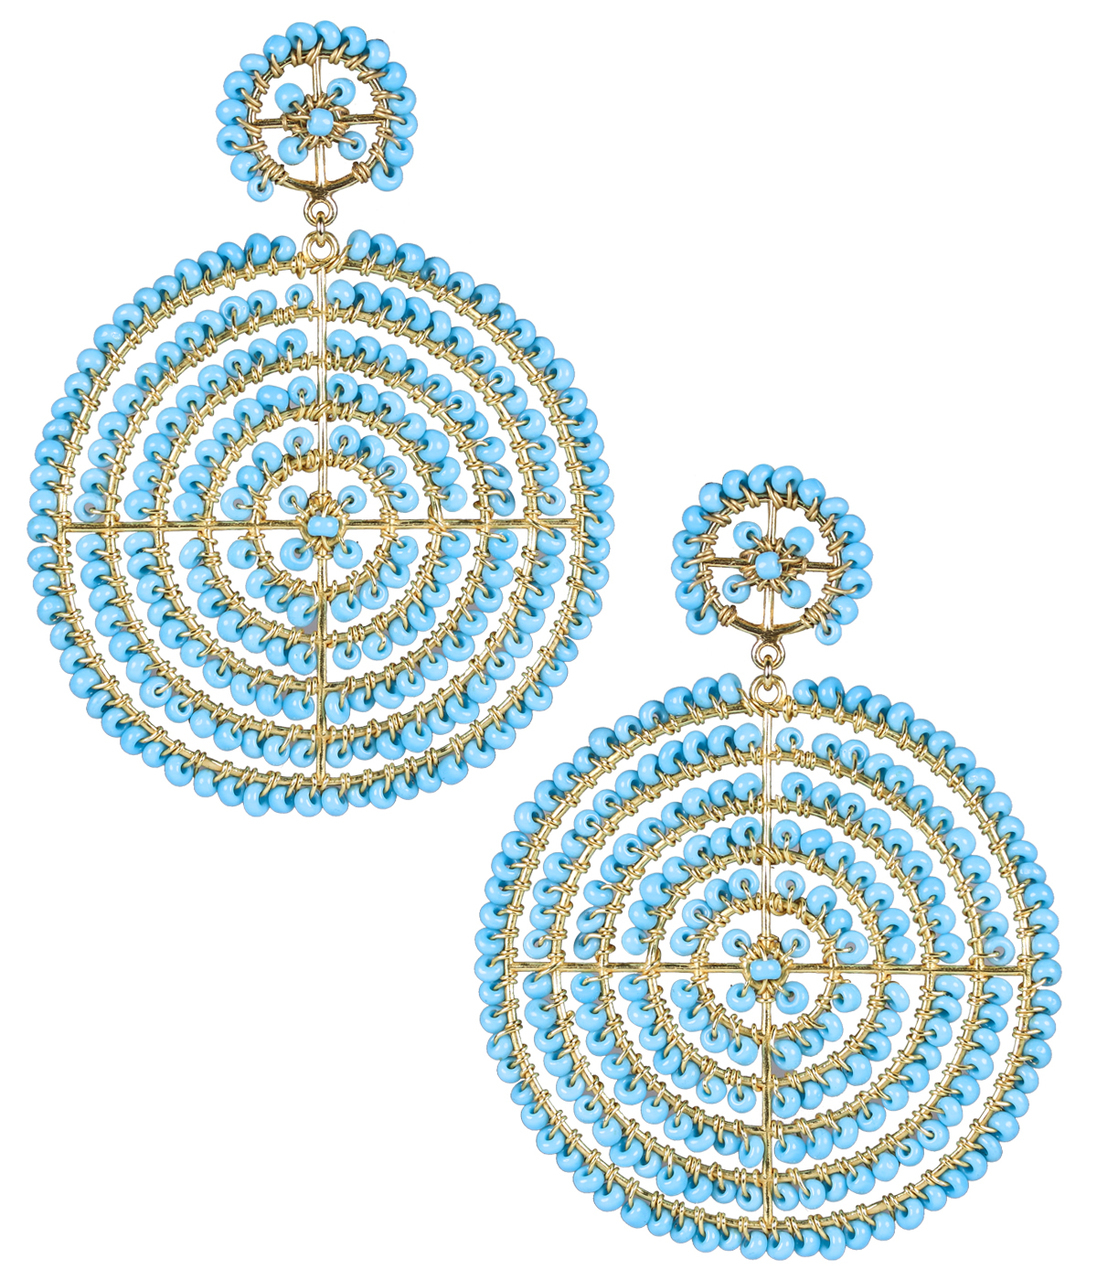 Disk Turquoise Earrings by LISI LERCH